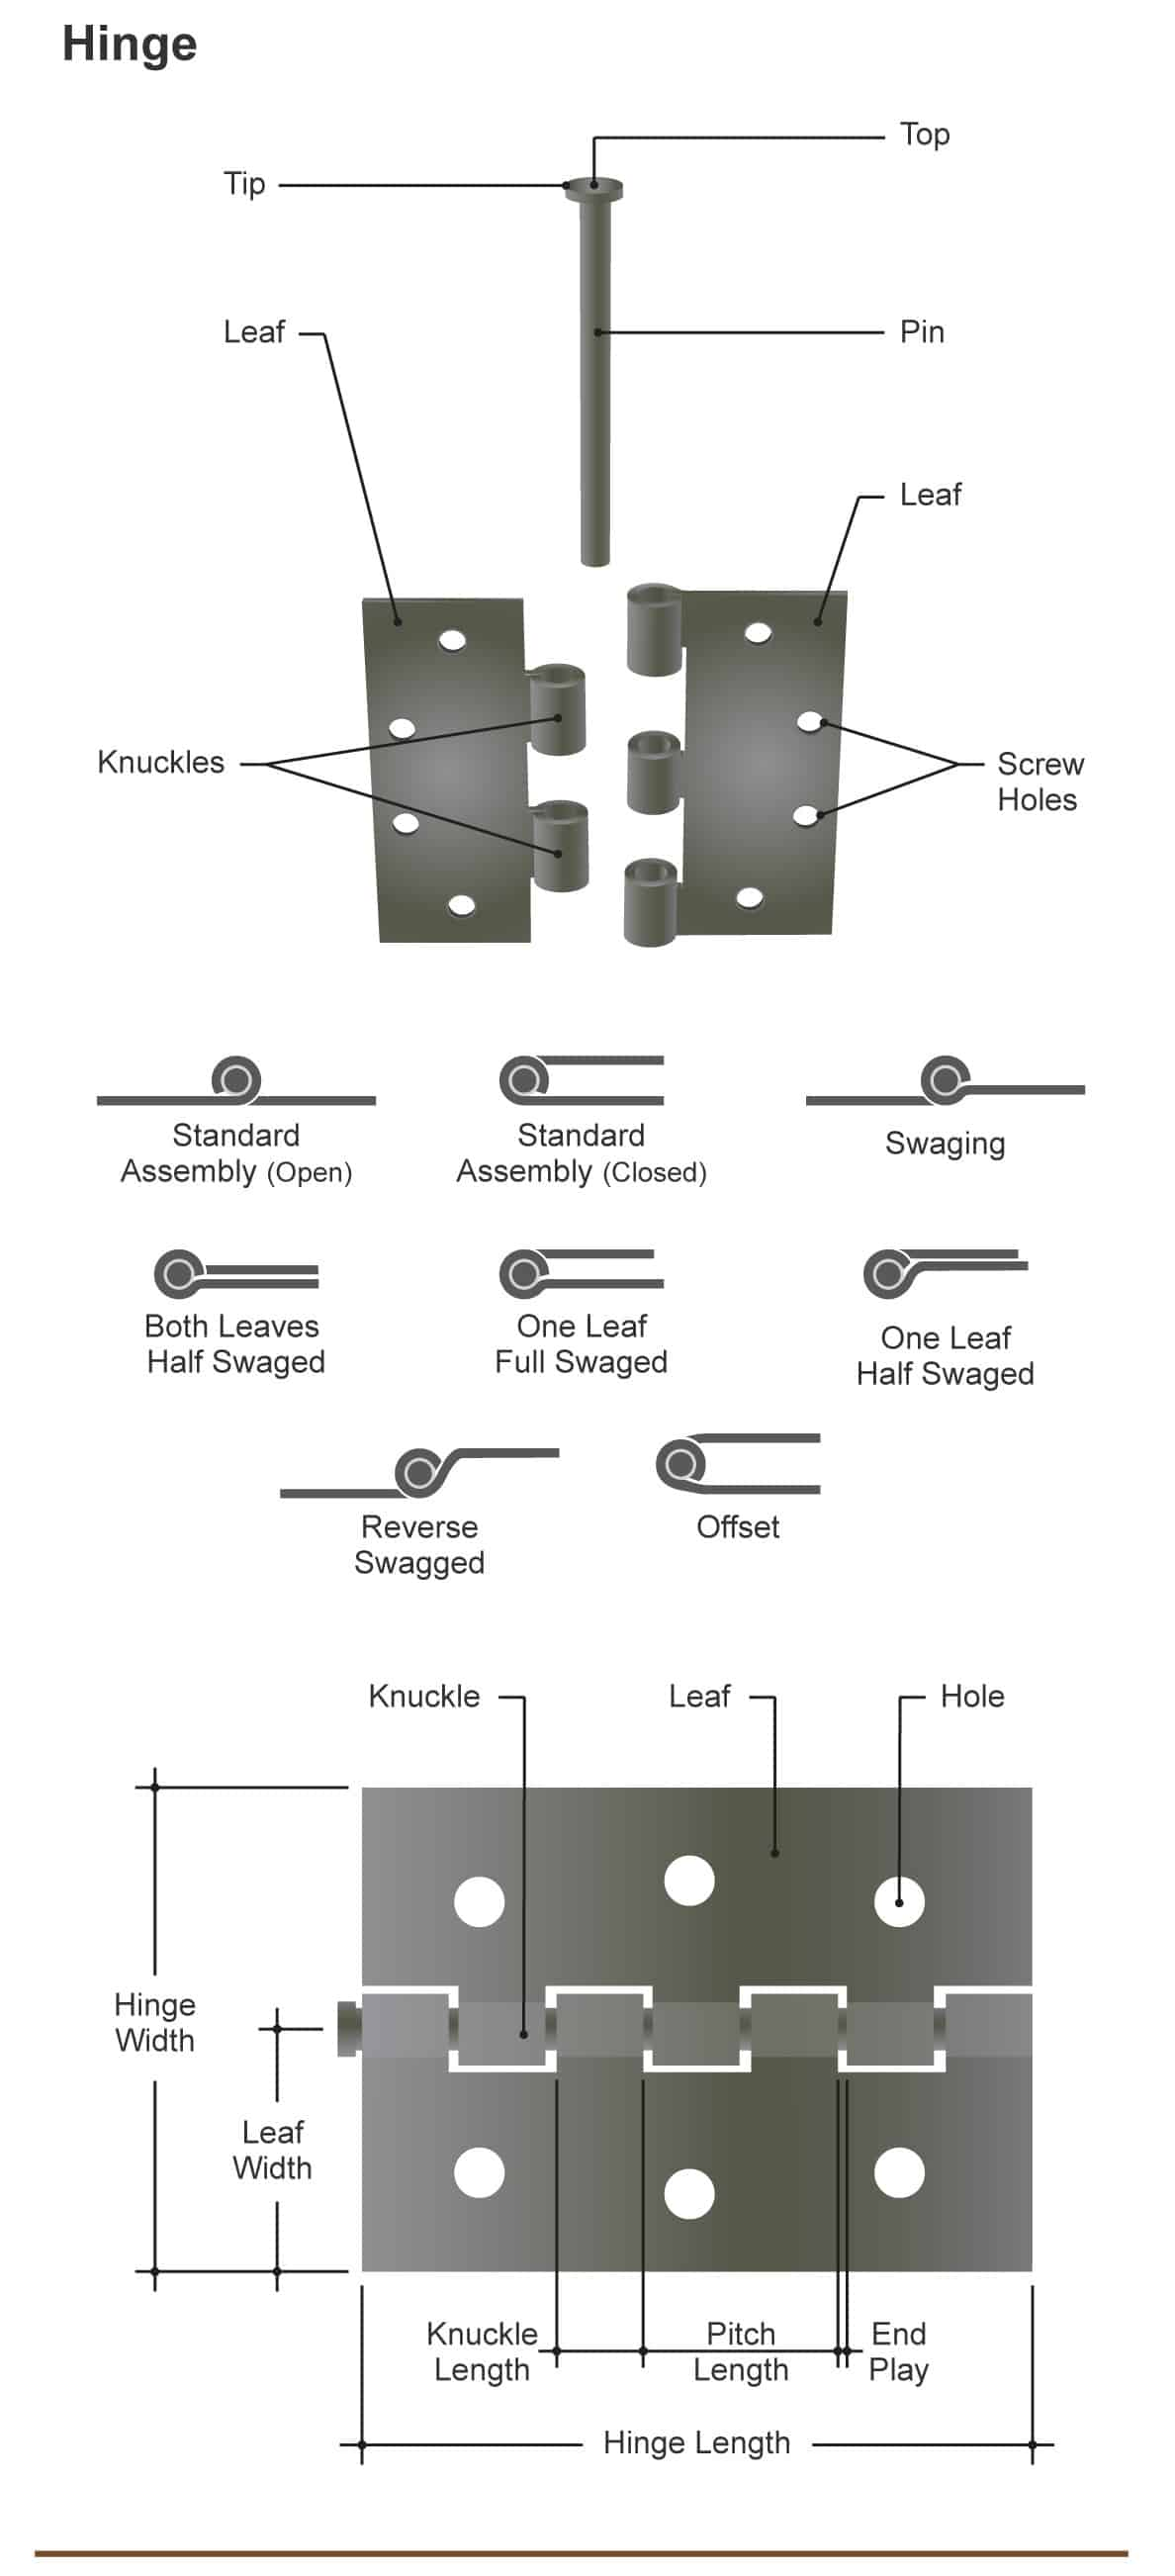 Diagram illustrating the many different parts of a door hinge and types of hinges.